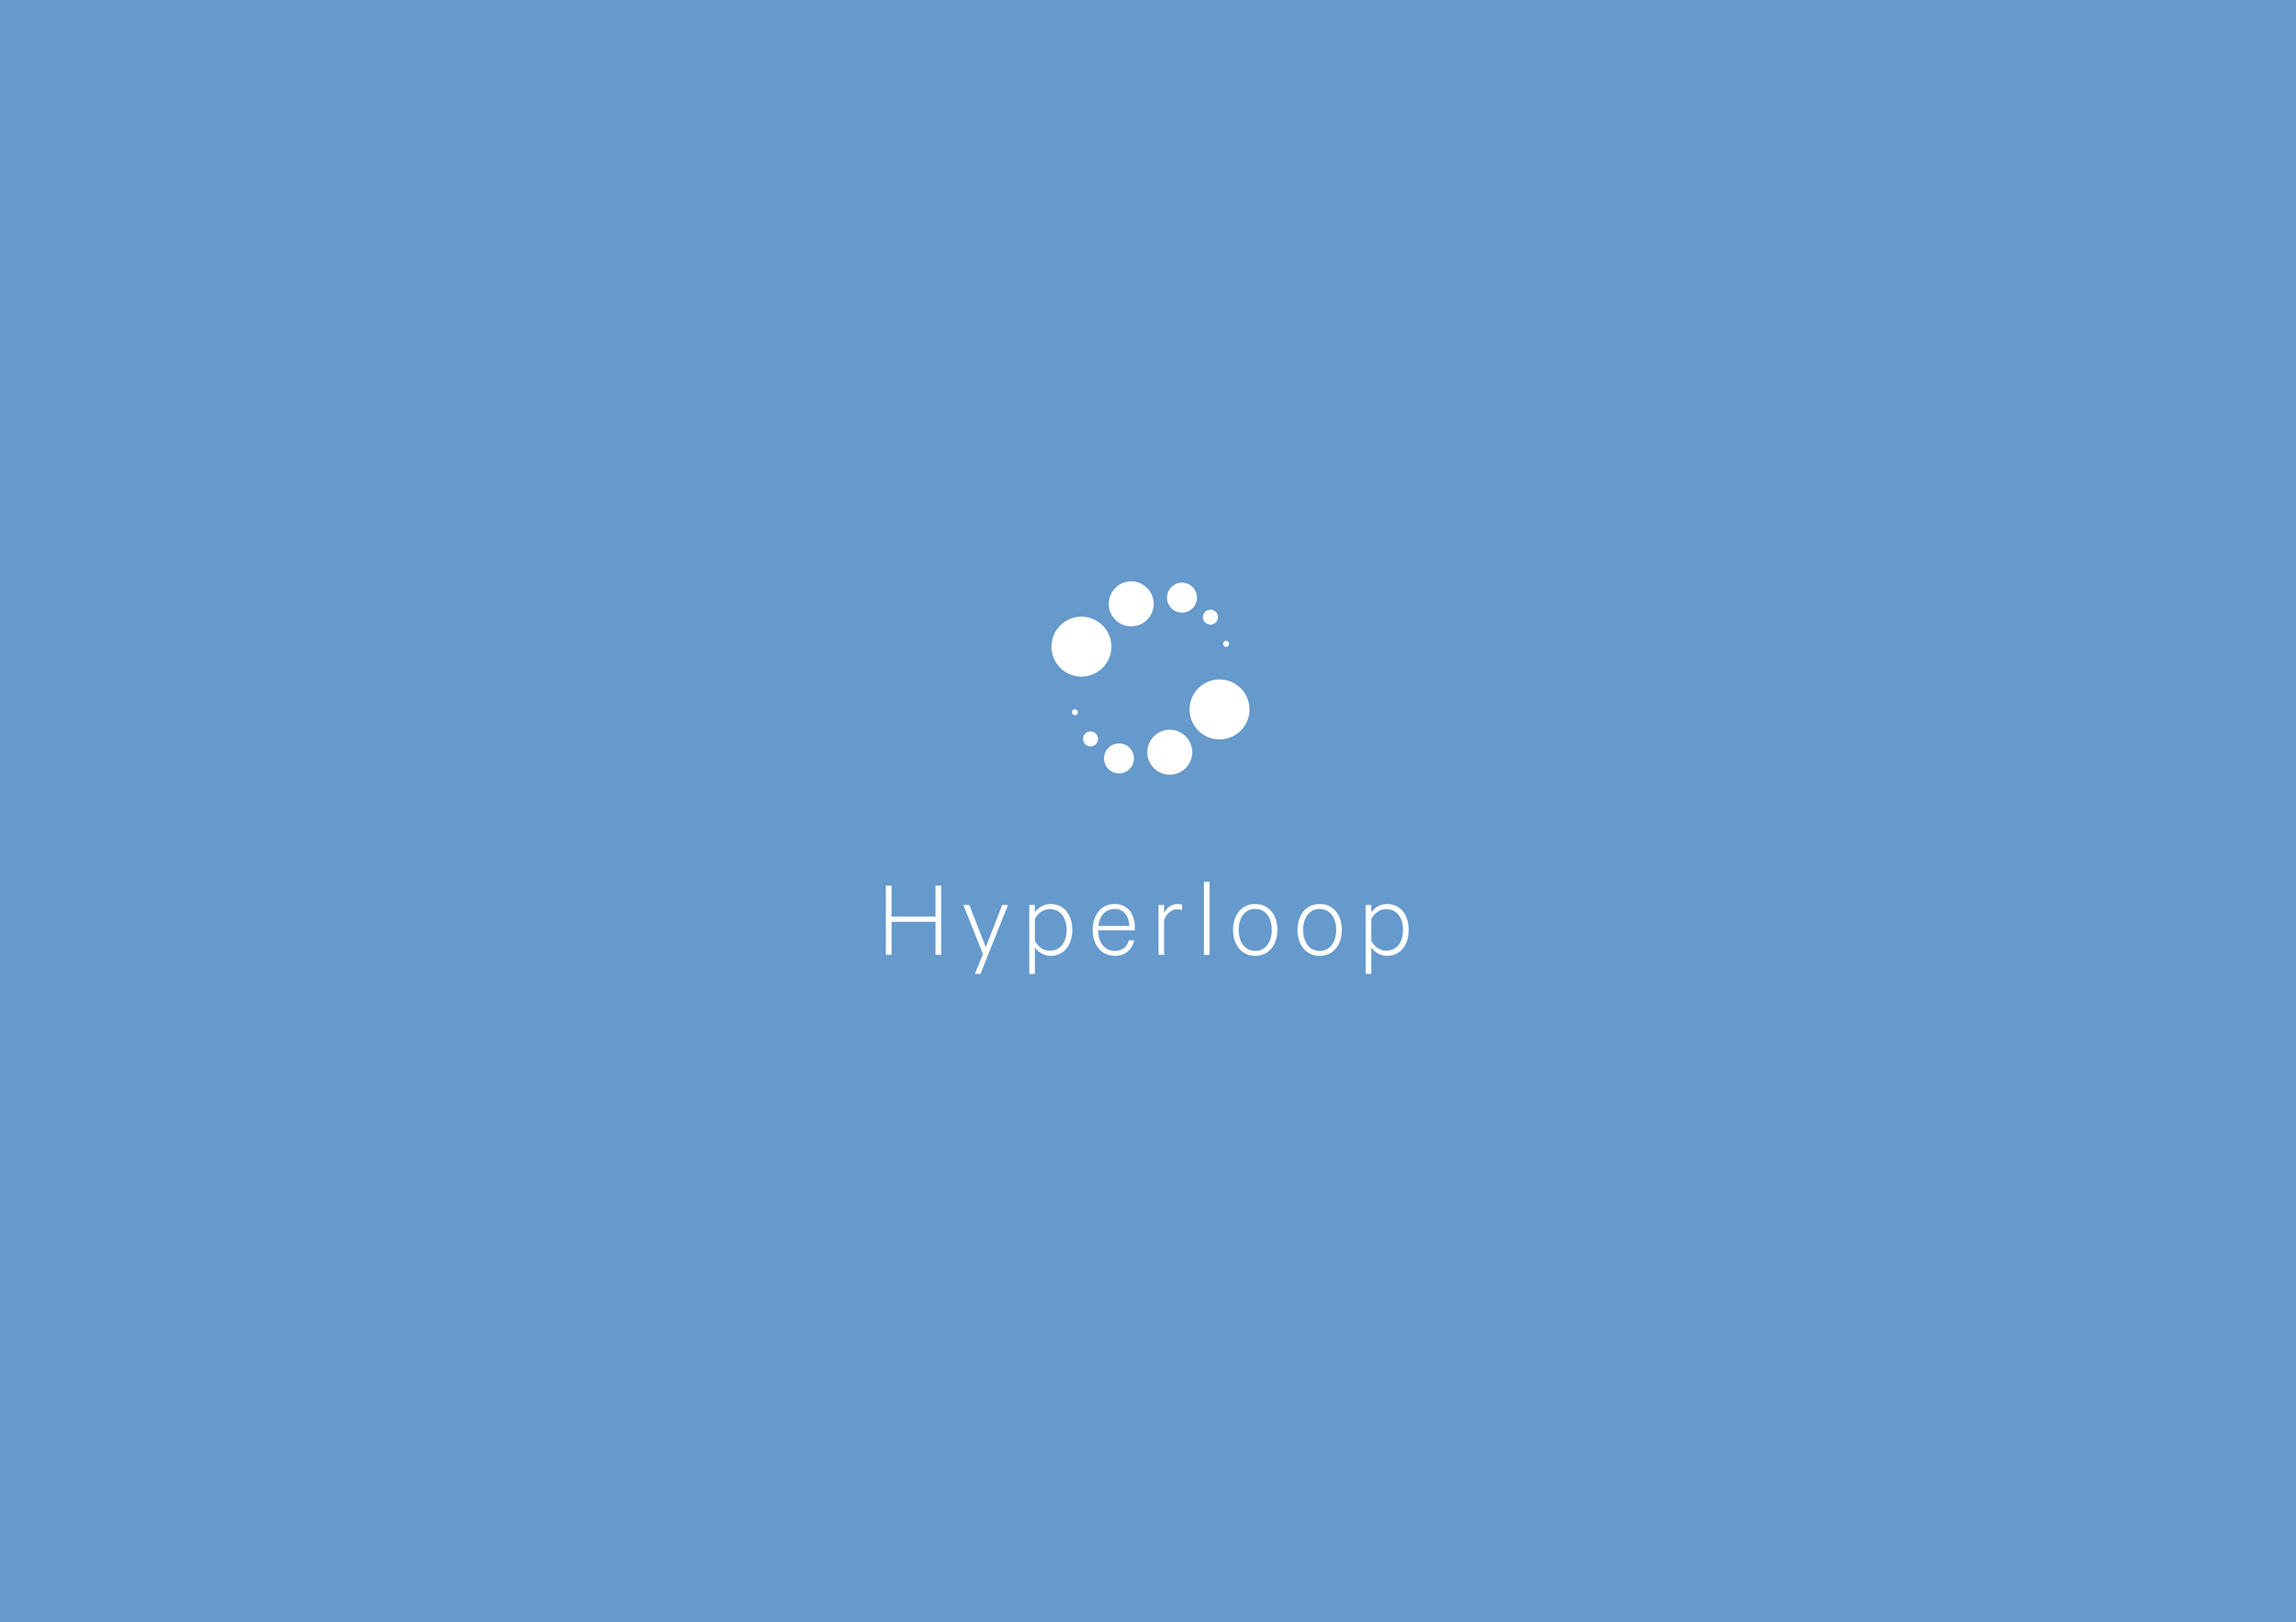 Hyperloop_Logos-05.jpg